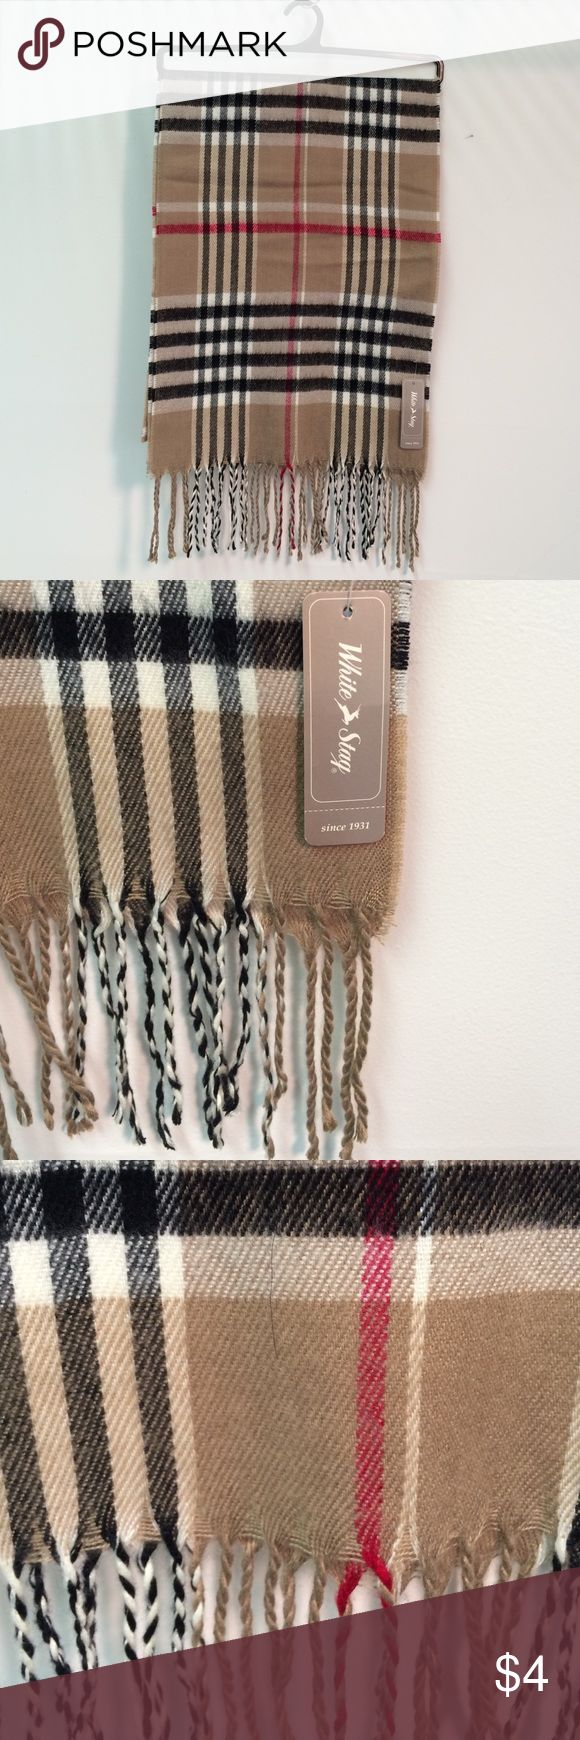 White Stag Camel Plaid Muffler Scarf - One Size 100% Acrylic Plaid Scarf White Stag Accessories Scarves & Wraps